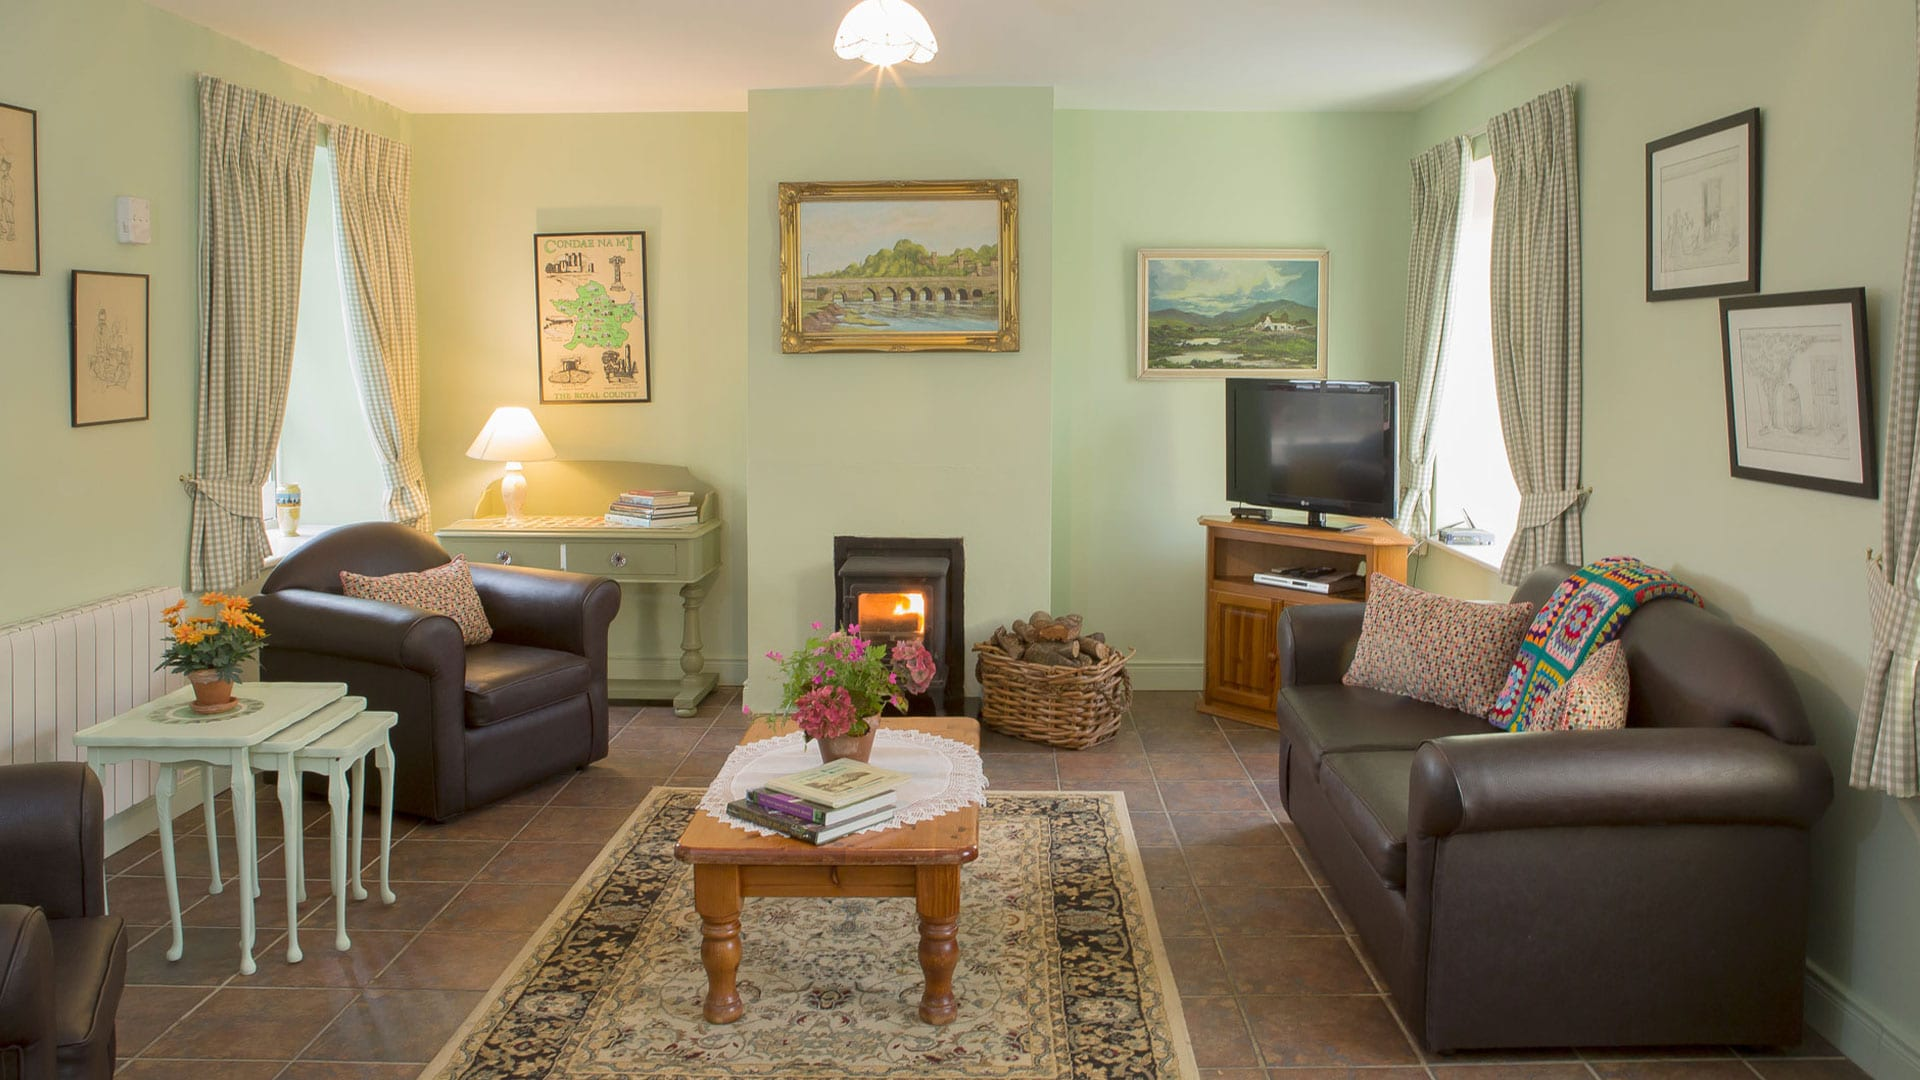 Living-Room-Couches-Sofas-Table--Holiday-Homes-Ireland-Meath-Dunshaughlin-Self-Catering